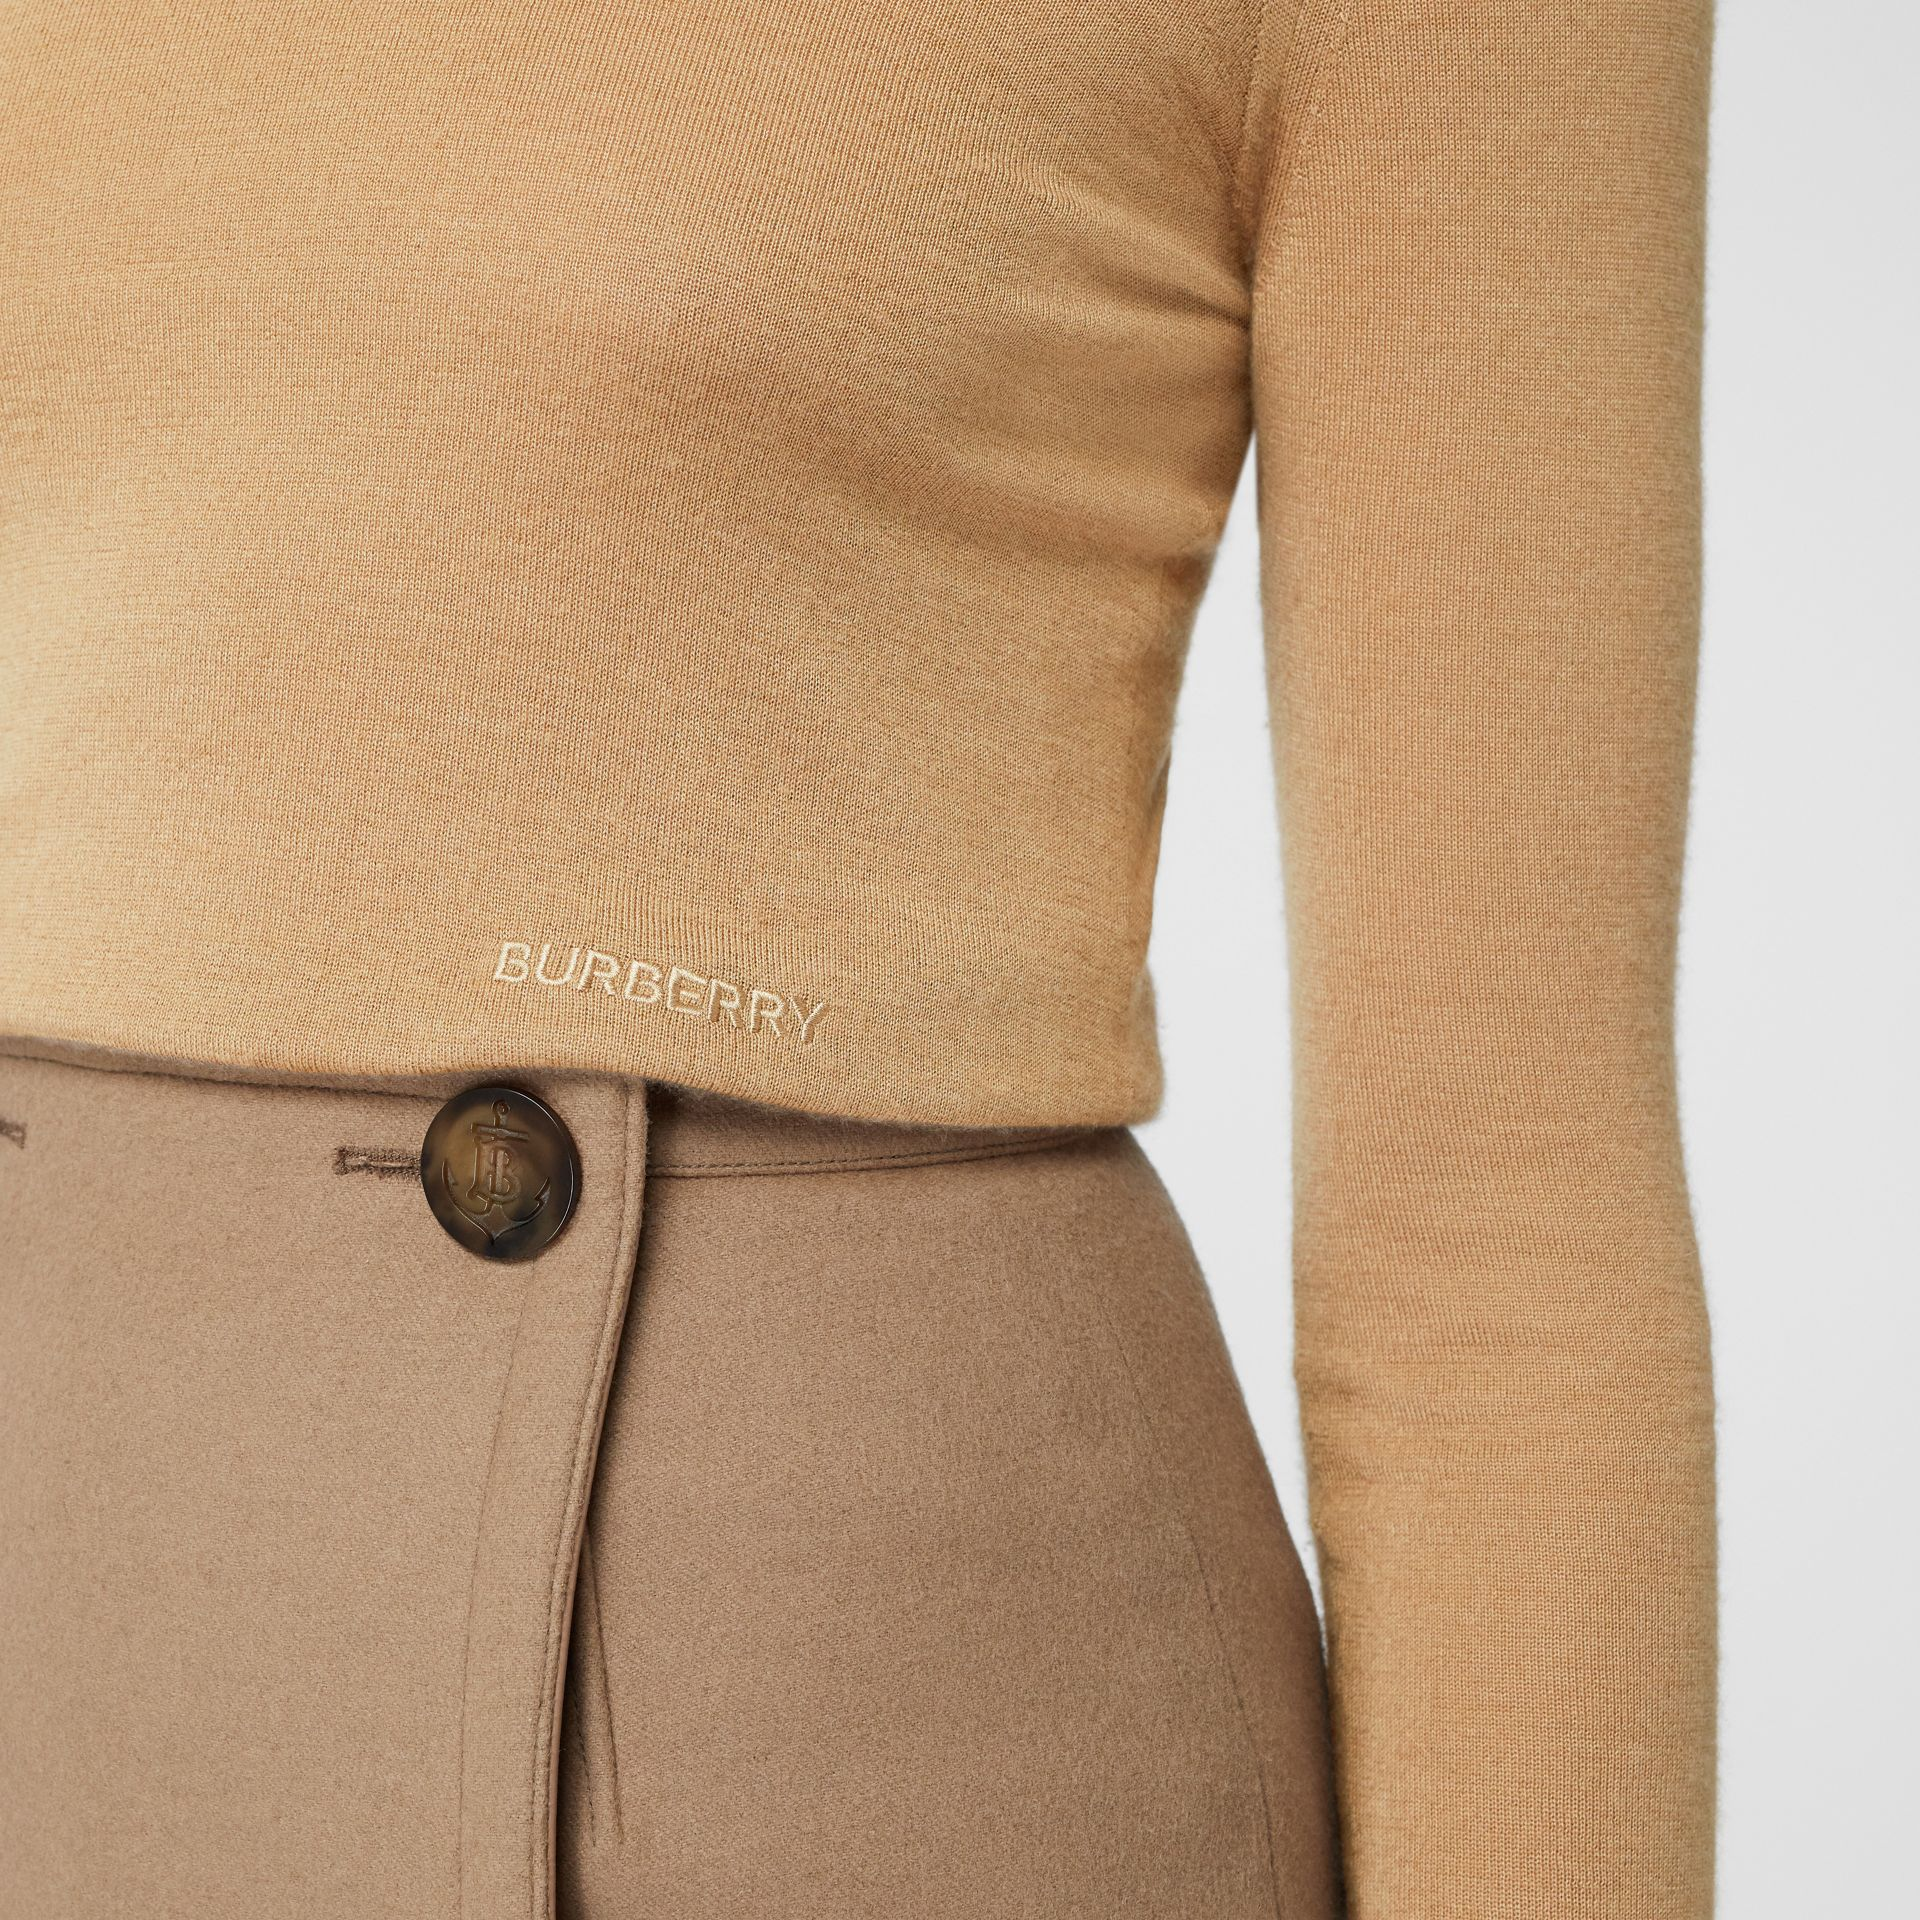 Embroidered Logo Cashmere Silk Roll-neck Sweater in Archive Beige - Women | Burberry - gallery image 1